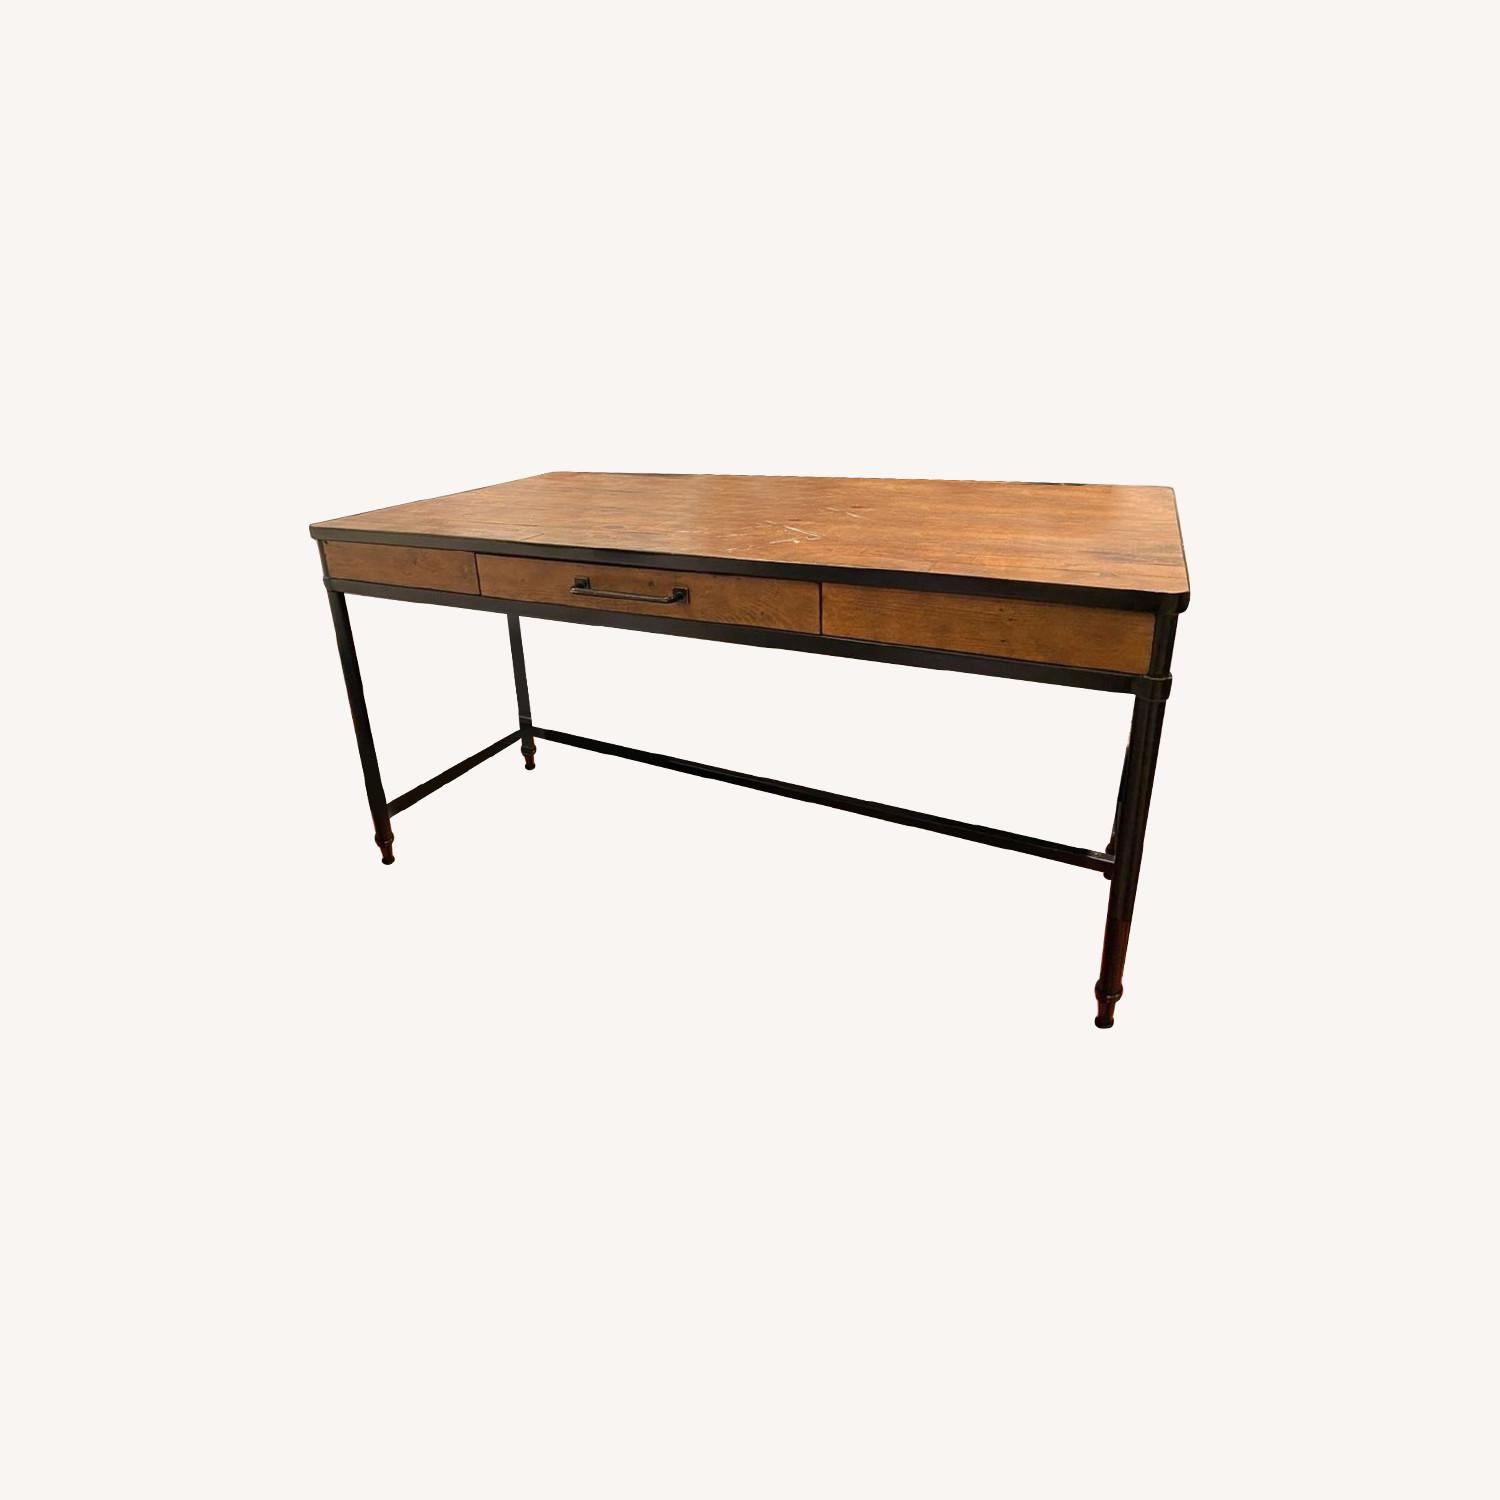 Pottery Barn Juno Reclaimed Pine Desk - image-0